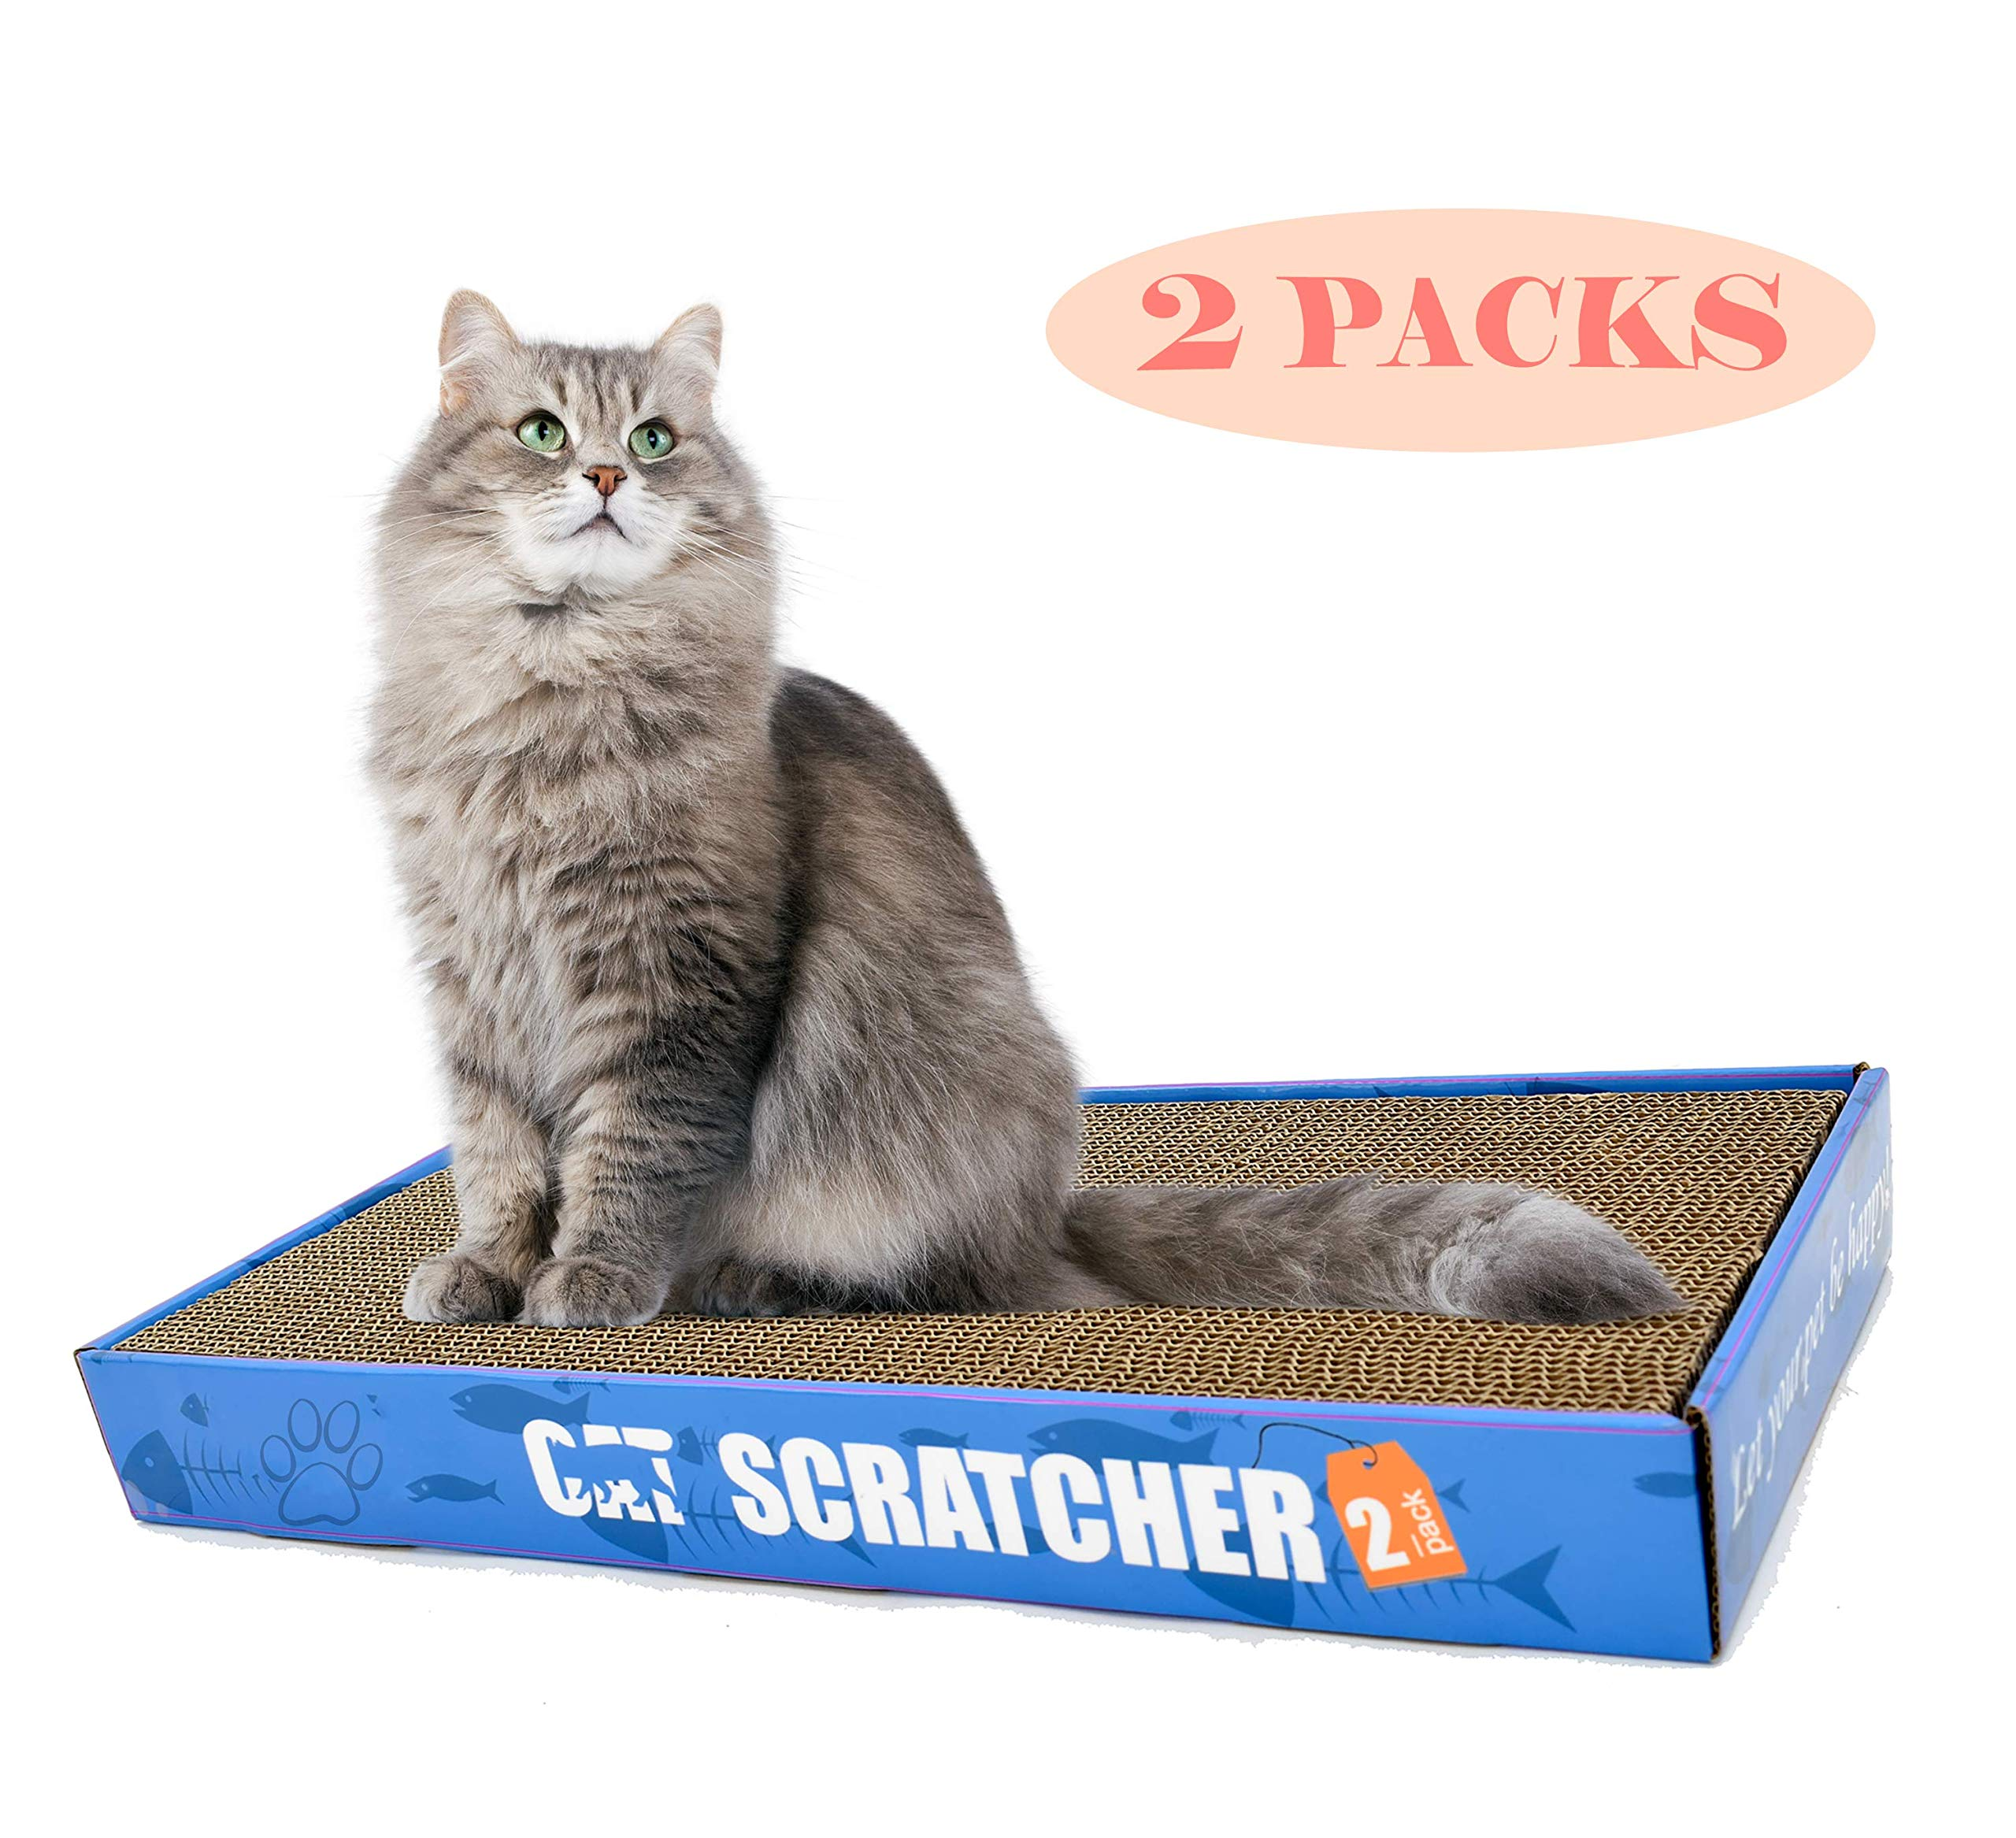 Cat Scratching Post 2 in 1 with Catnip Kitten Scratcher Toy 2 Packs Pad Cardboard and Refill (2 Packs)